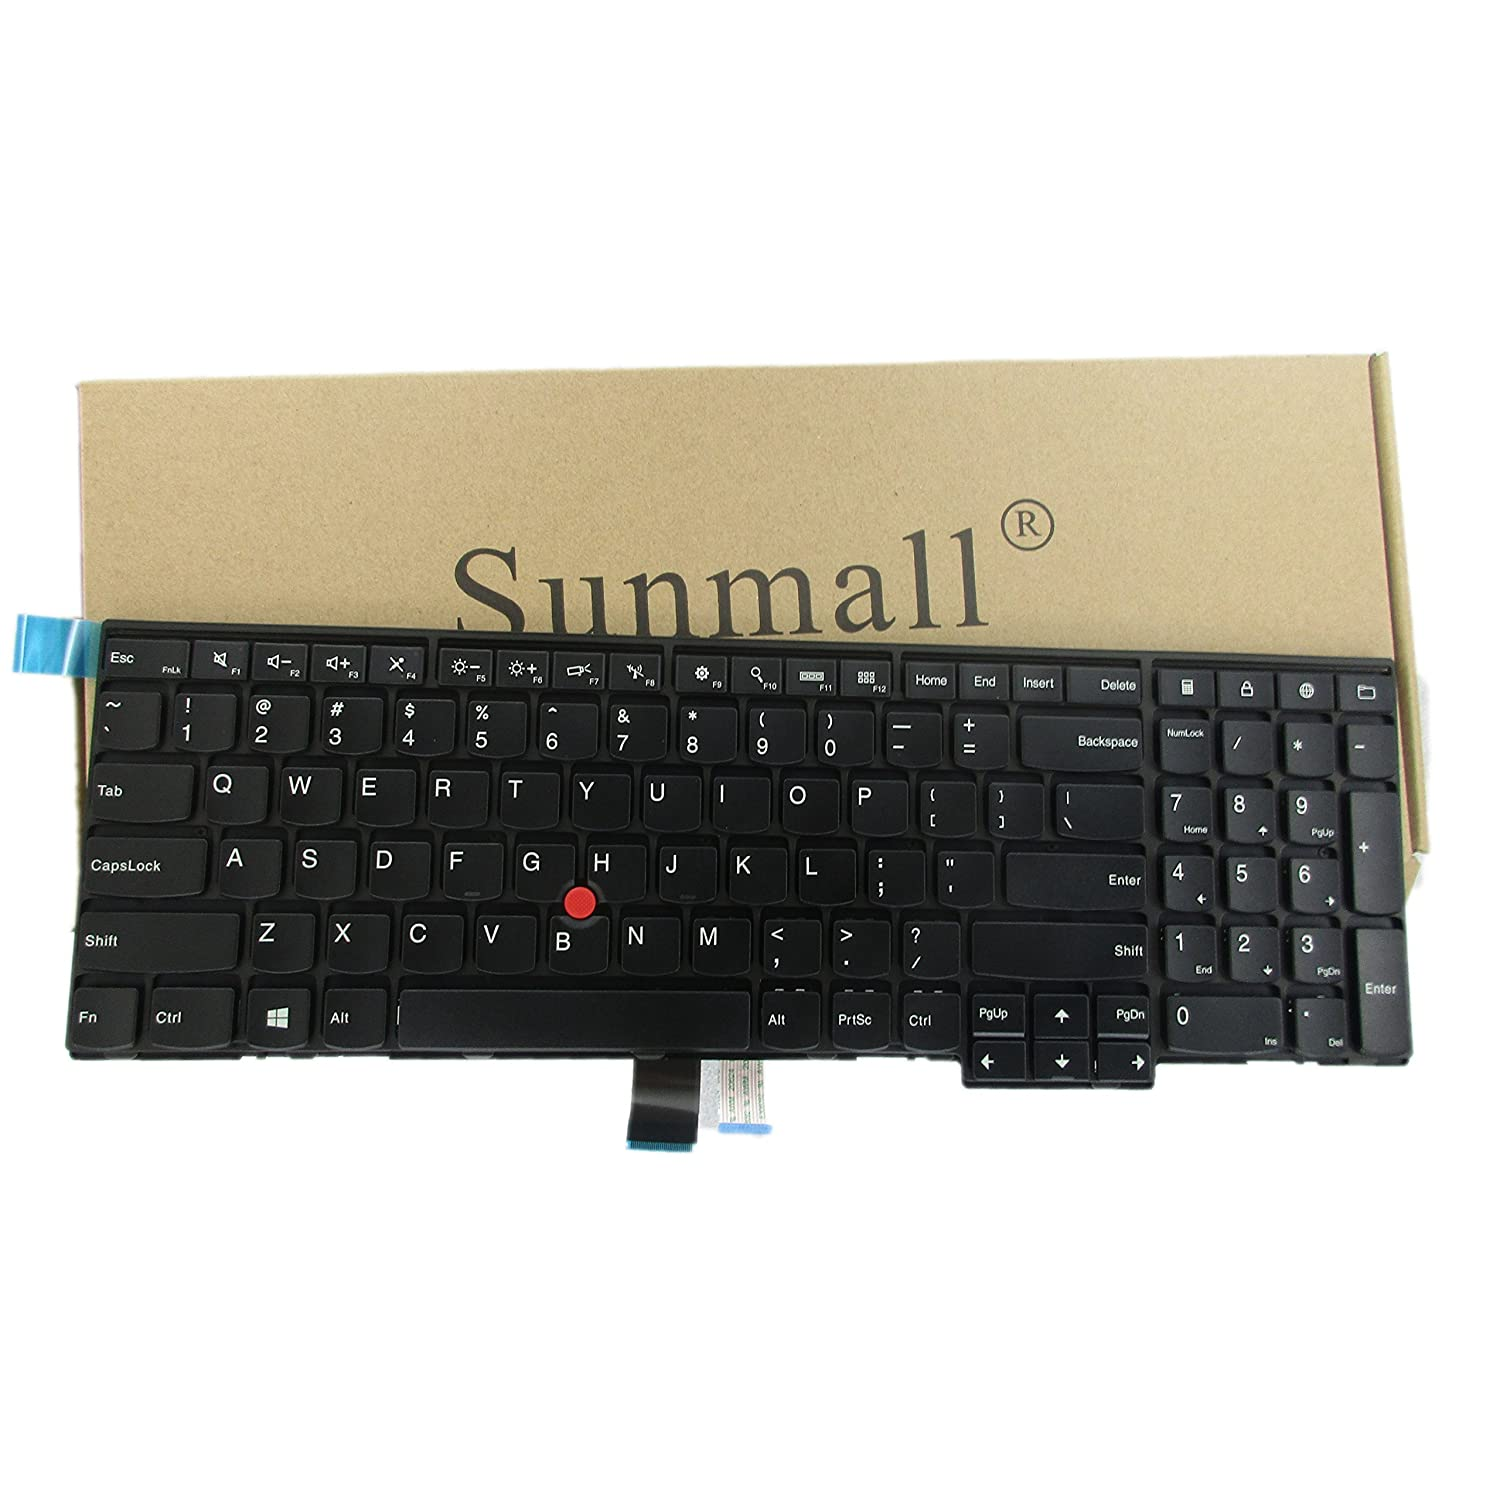 SUNMALL New Laptop Keyboard Replacement with Frame and Pointer Compatible with IBM Lenovo ThinkPad Edge E531 W540 W541 W550 W550S T540 T540P T550 Series Fit P//N 0C45254 04Y2465 Black US Layout